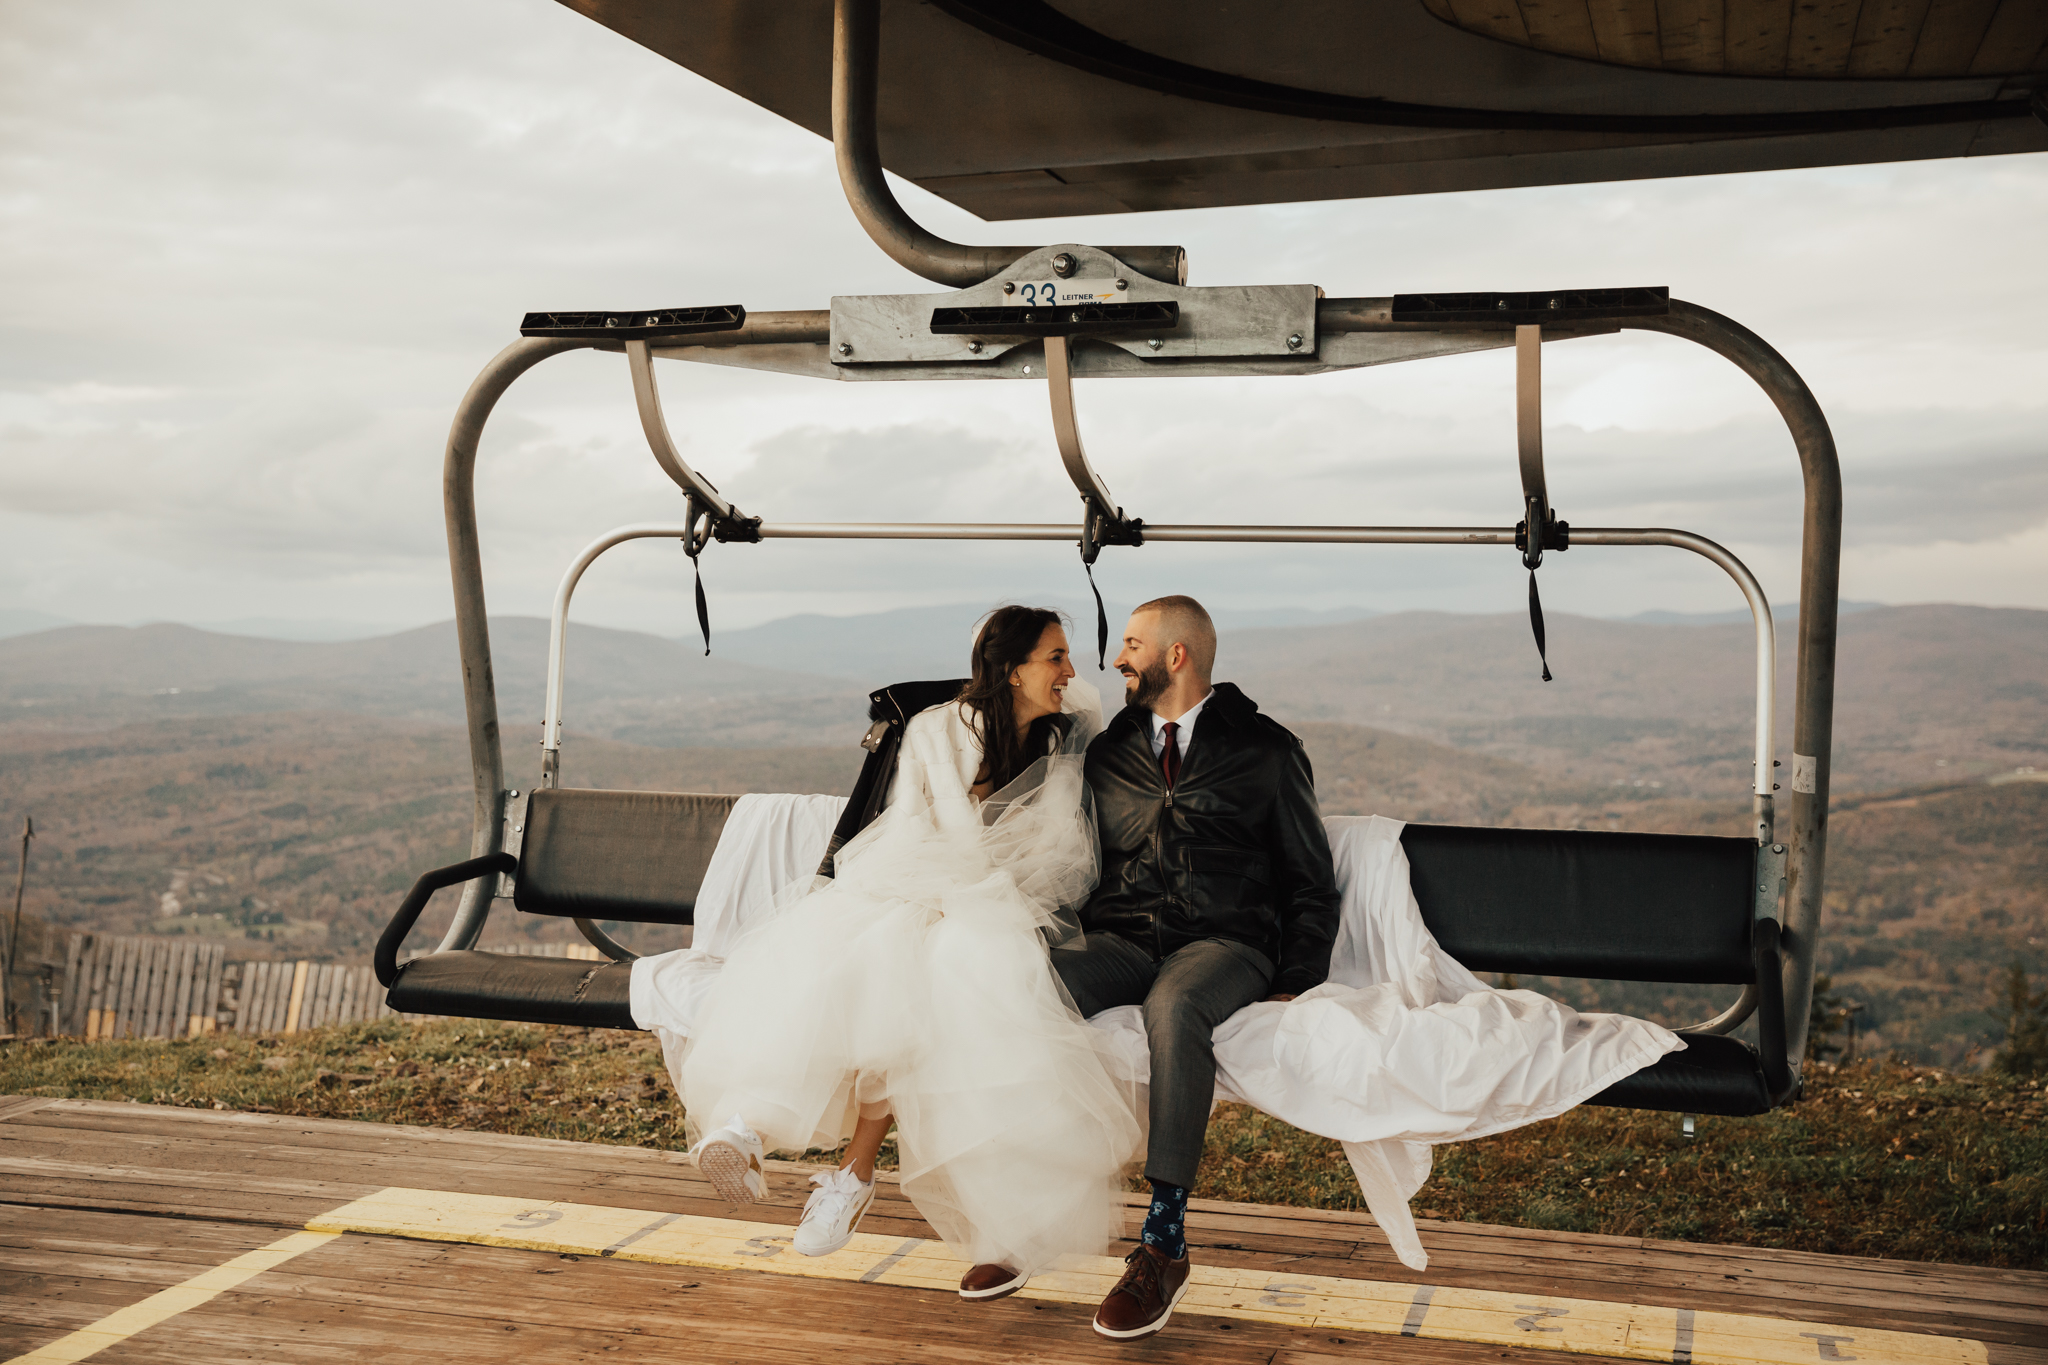 hunter mountain ski lift wedding